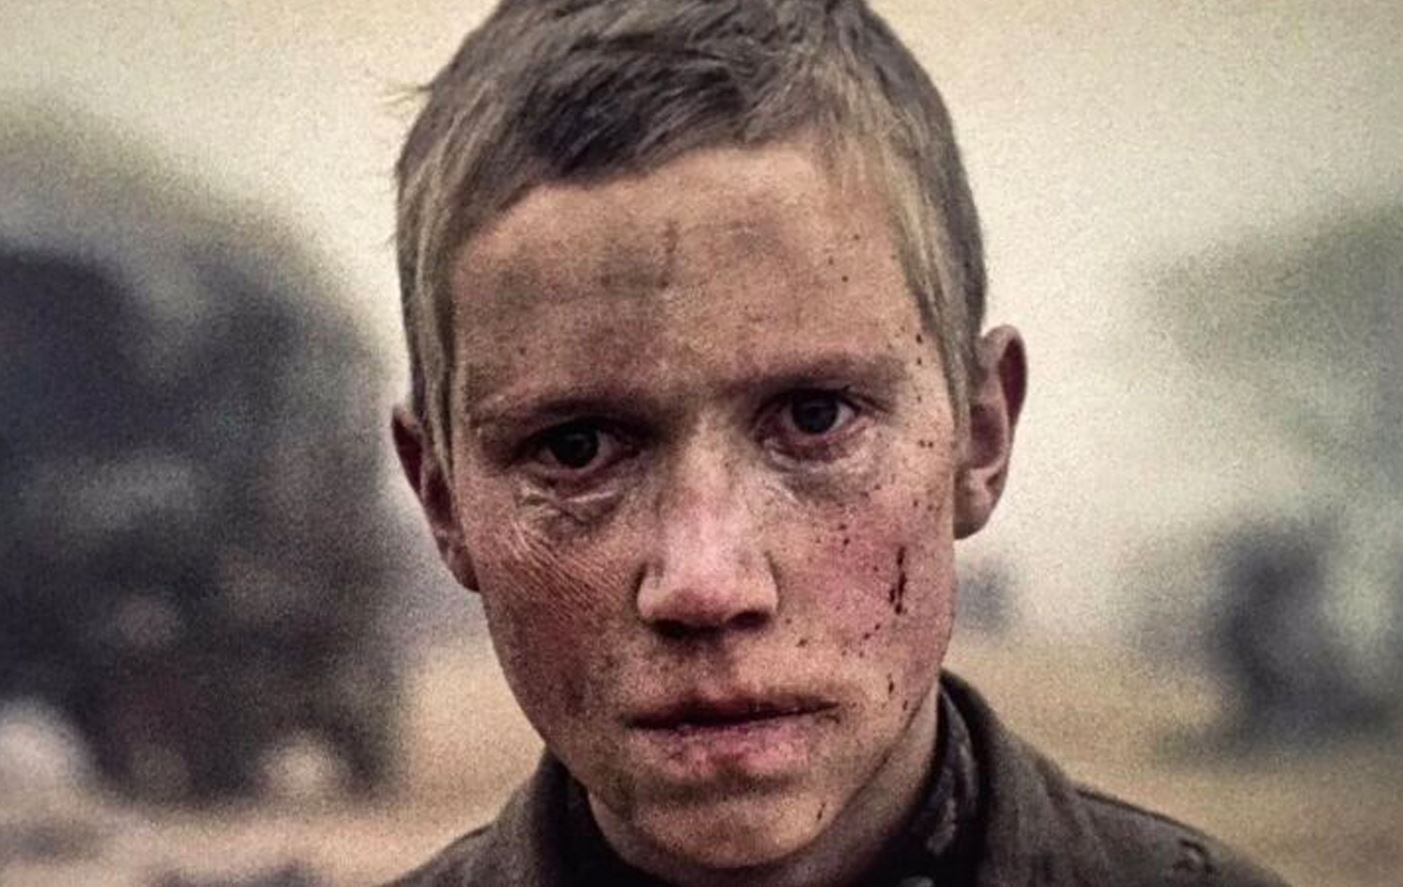 'Come and See': Capturing the True Horrors of War